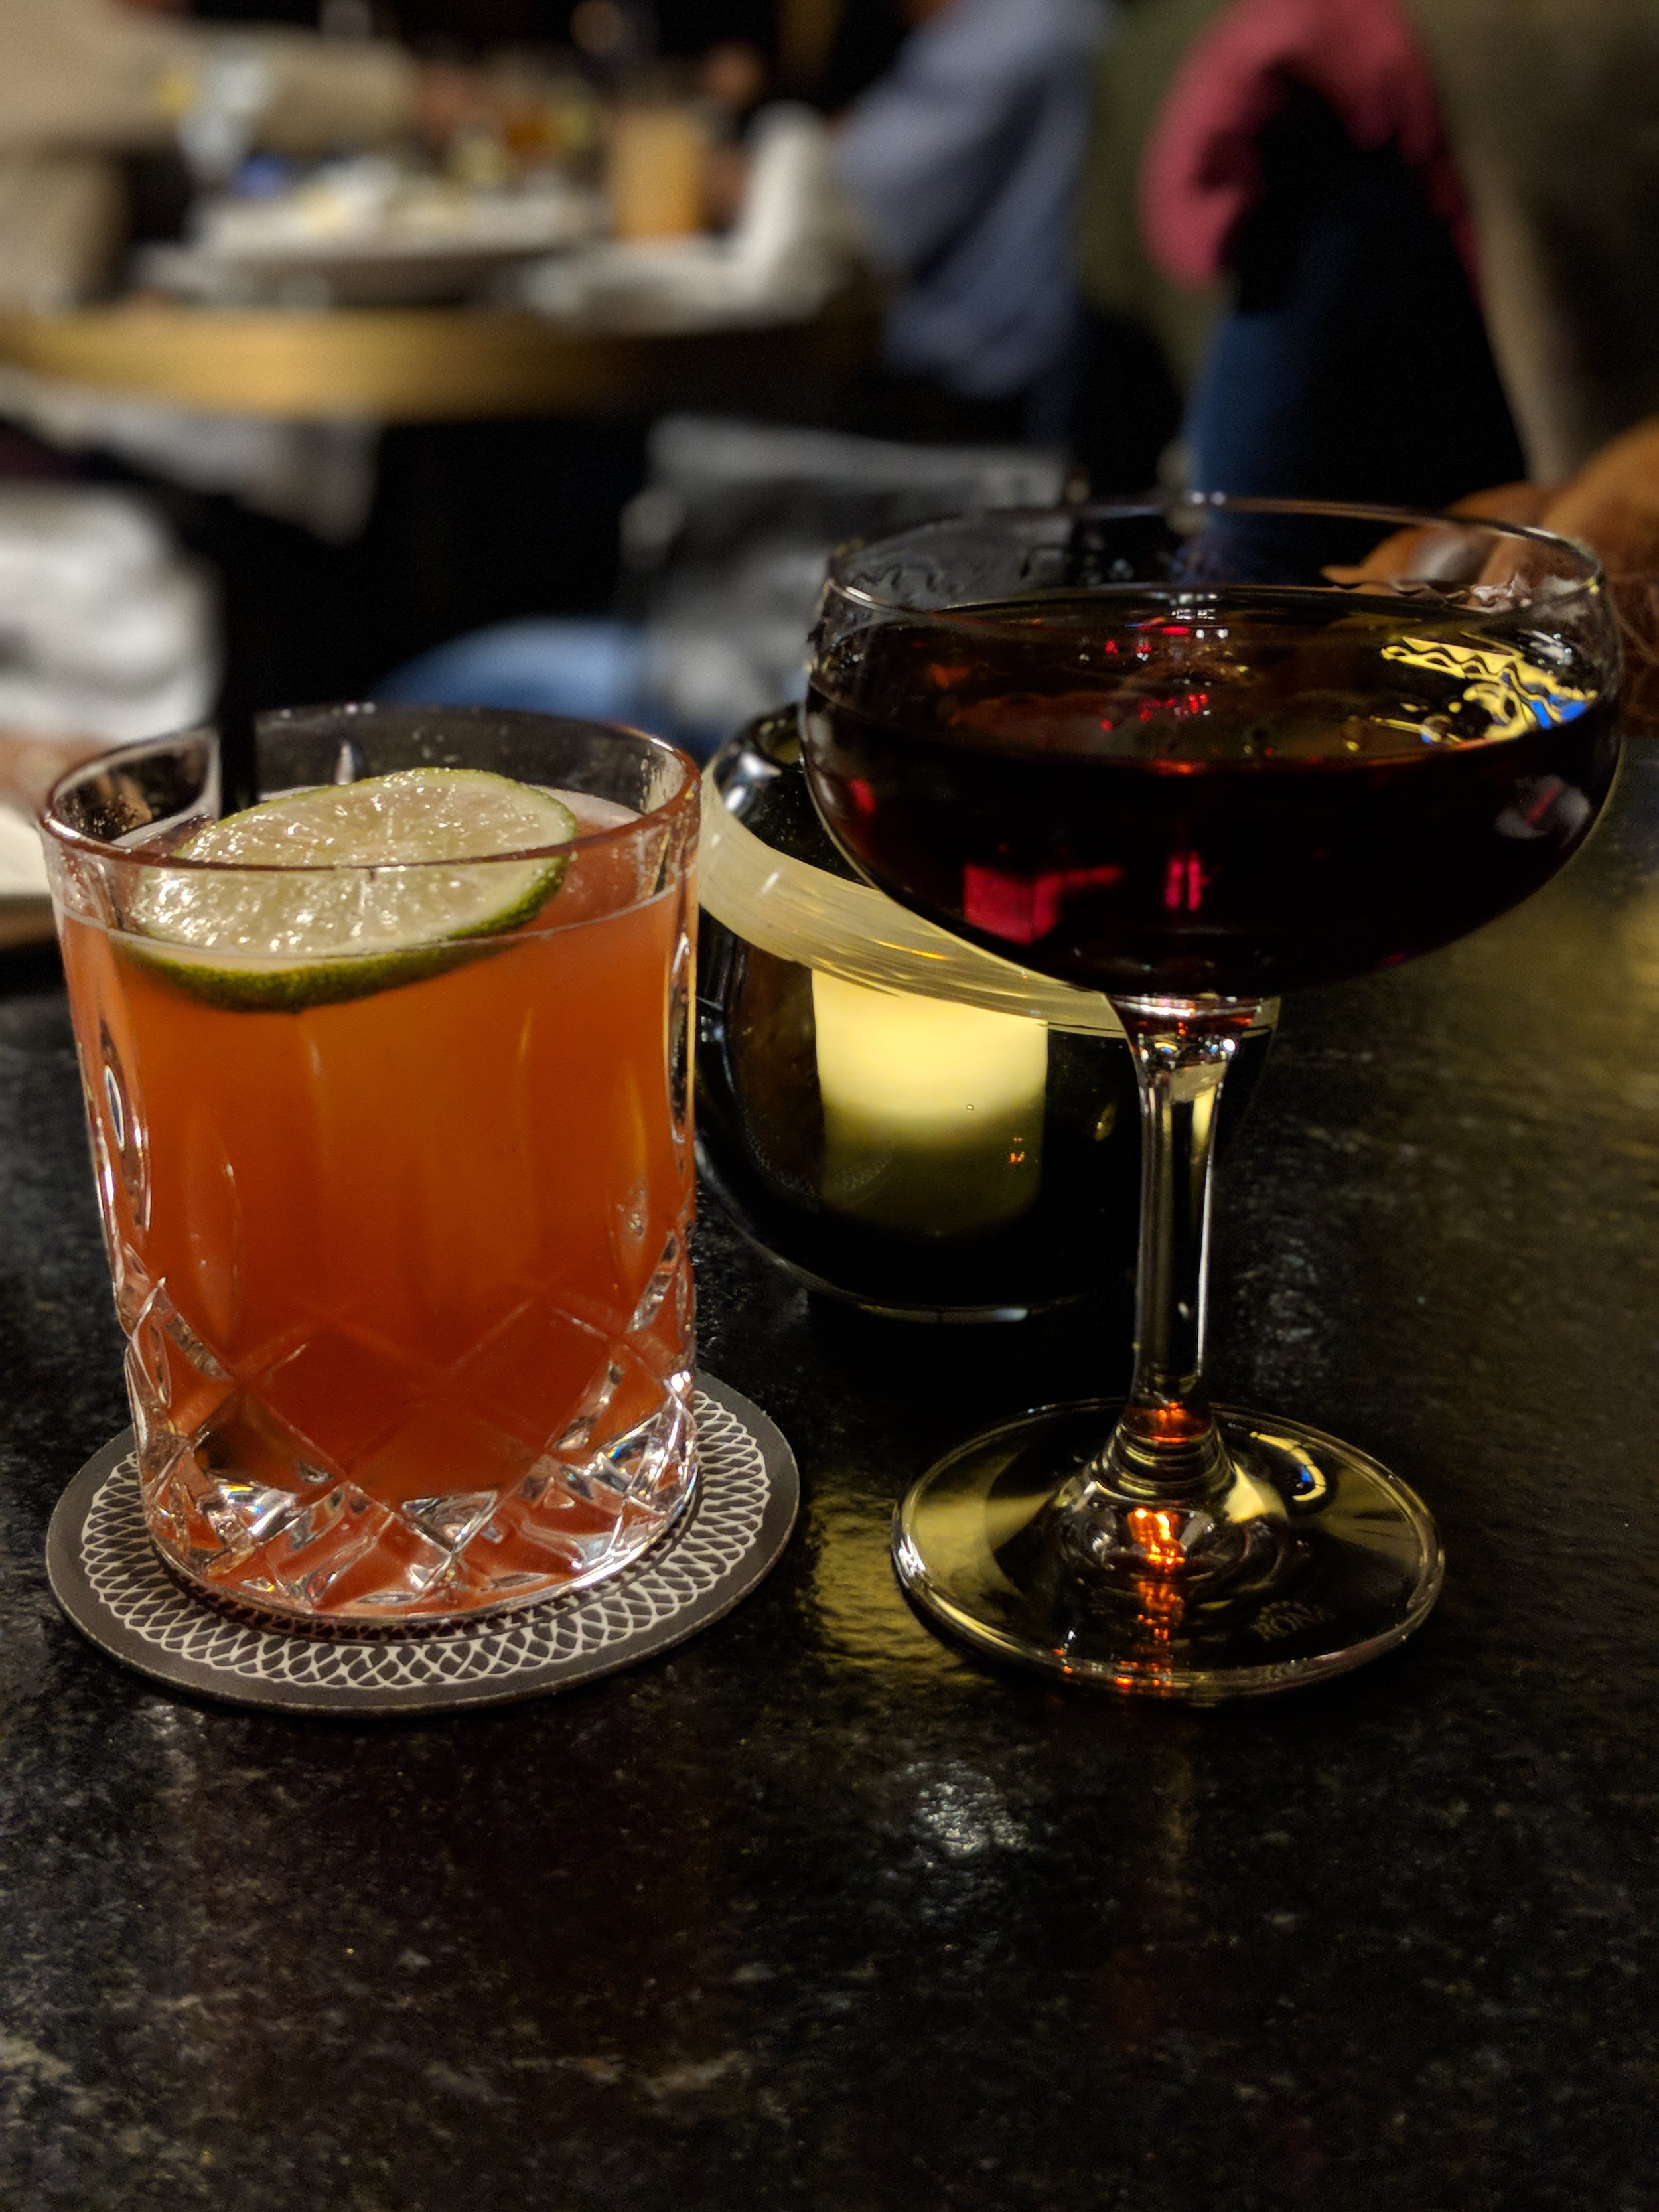 The craft cocktails at The Bancroft cannot be beat. A must-try during your next visit.